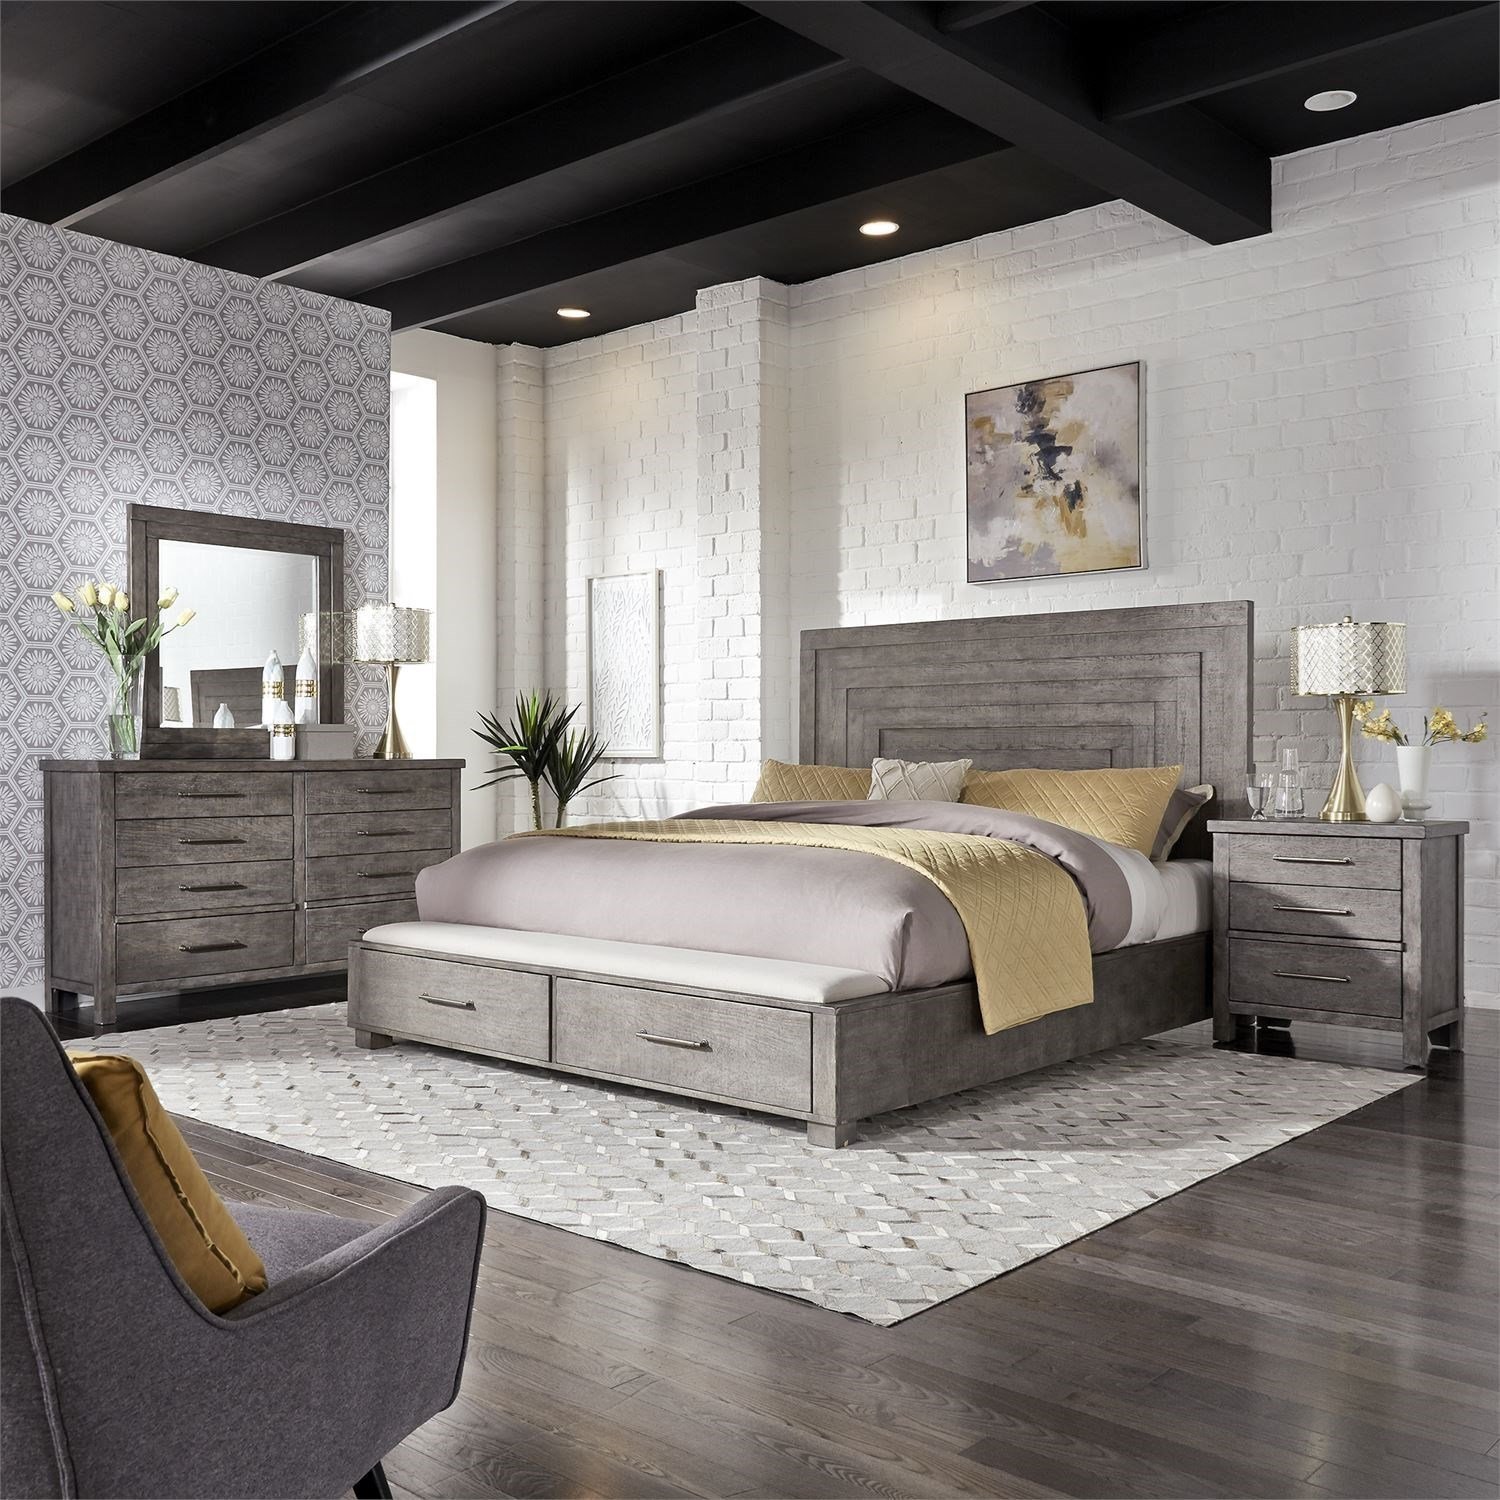 Liberty Furniture Modern Farmhouse Queen Bedroom Group Royal Furniture Bedroom Groups